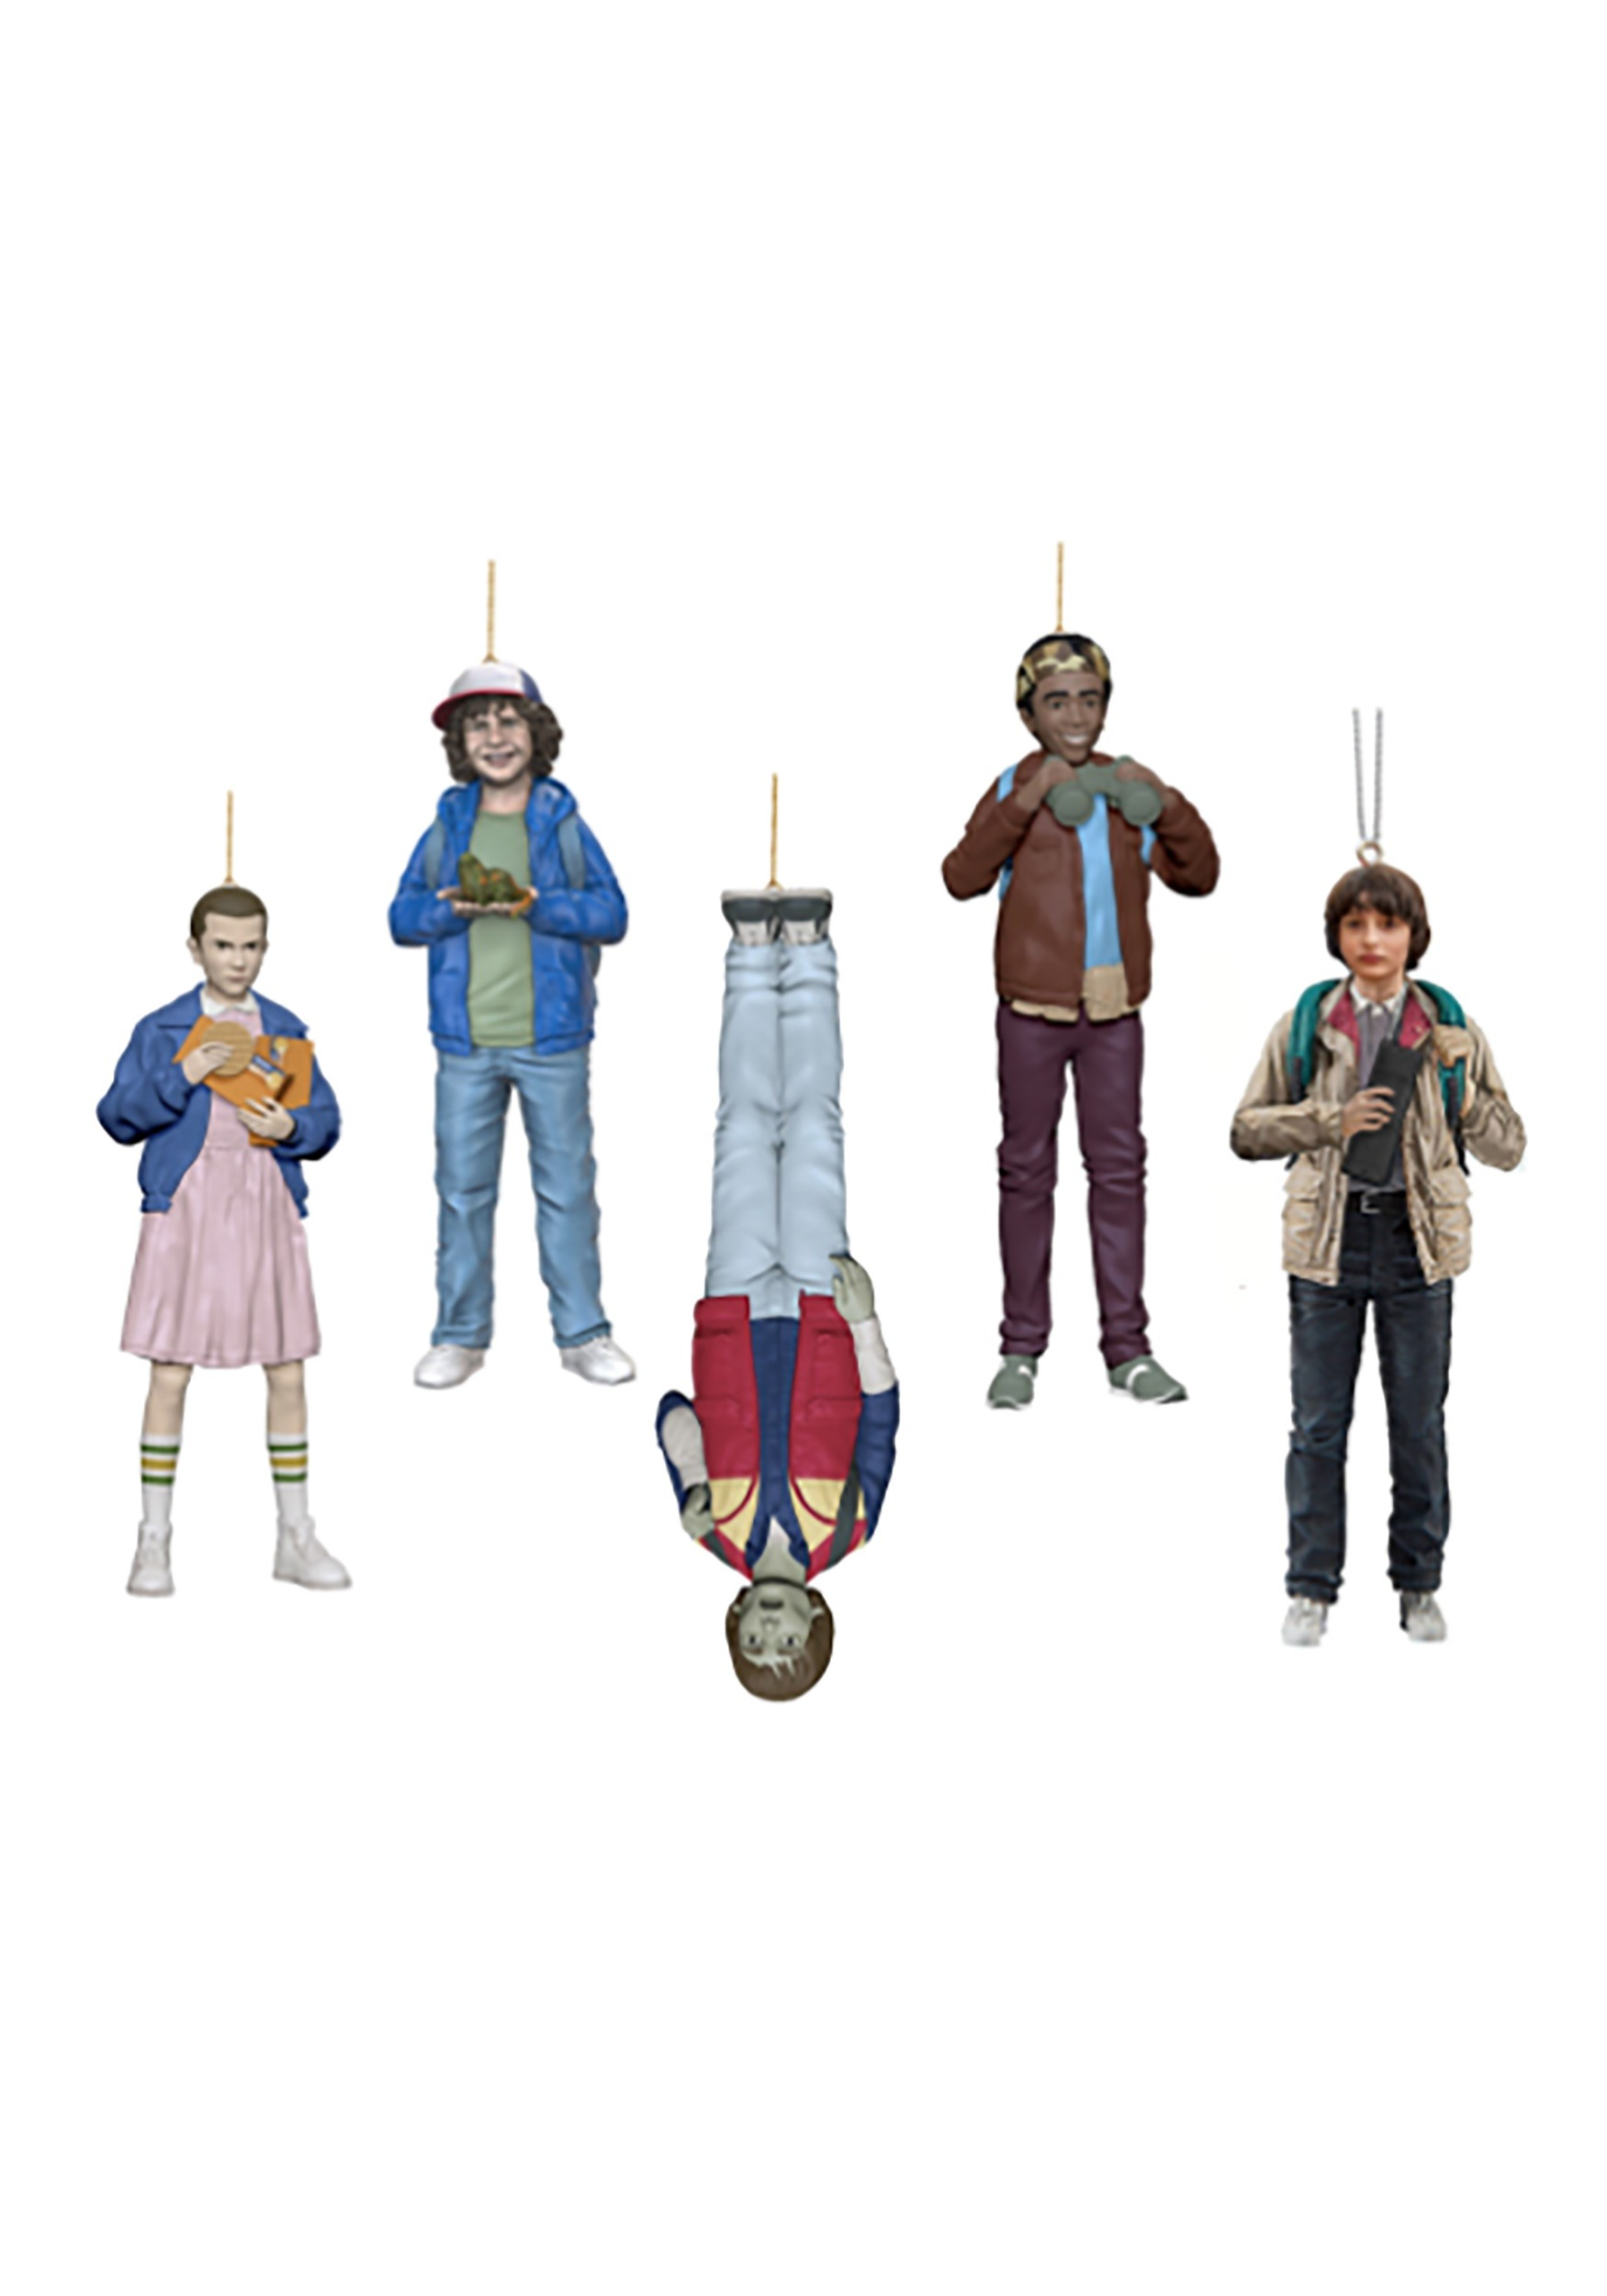 A Stranger Things Christmas.Stranger Things Resin Ornament 5 Piece Set